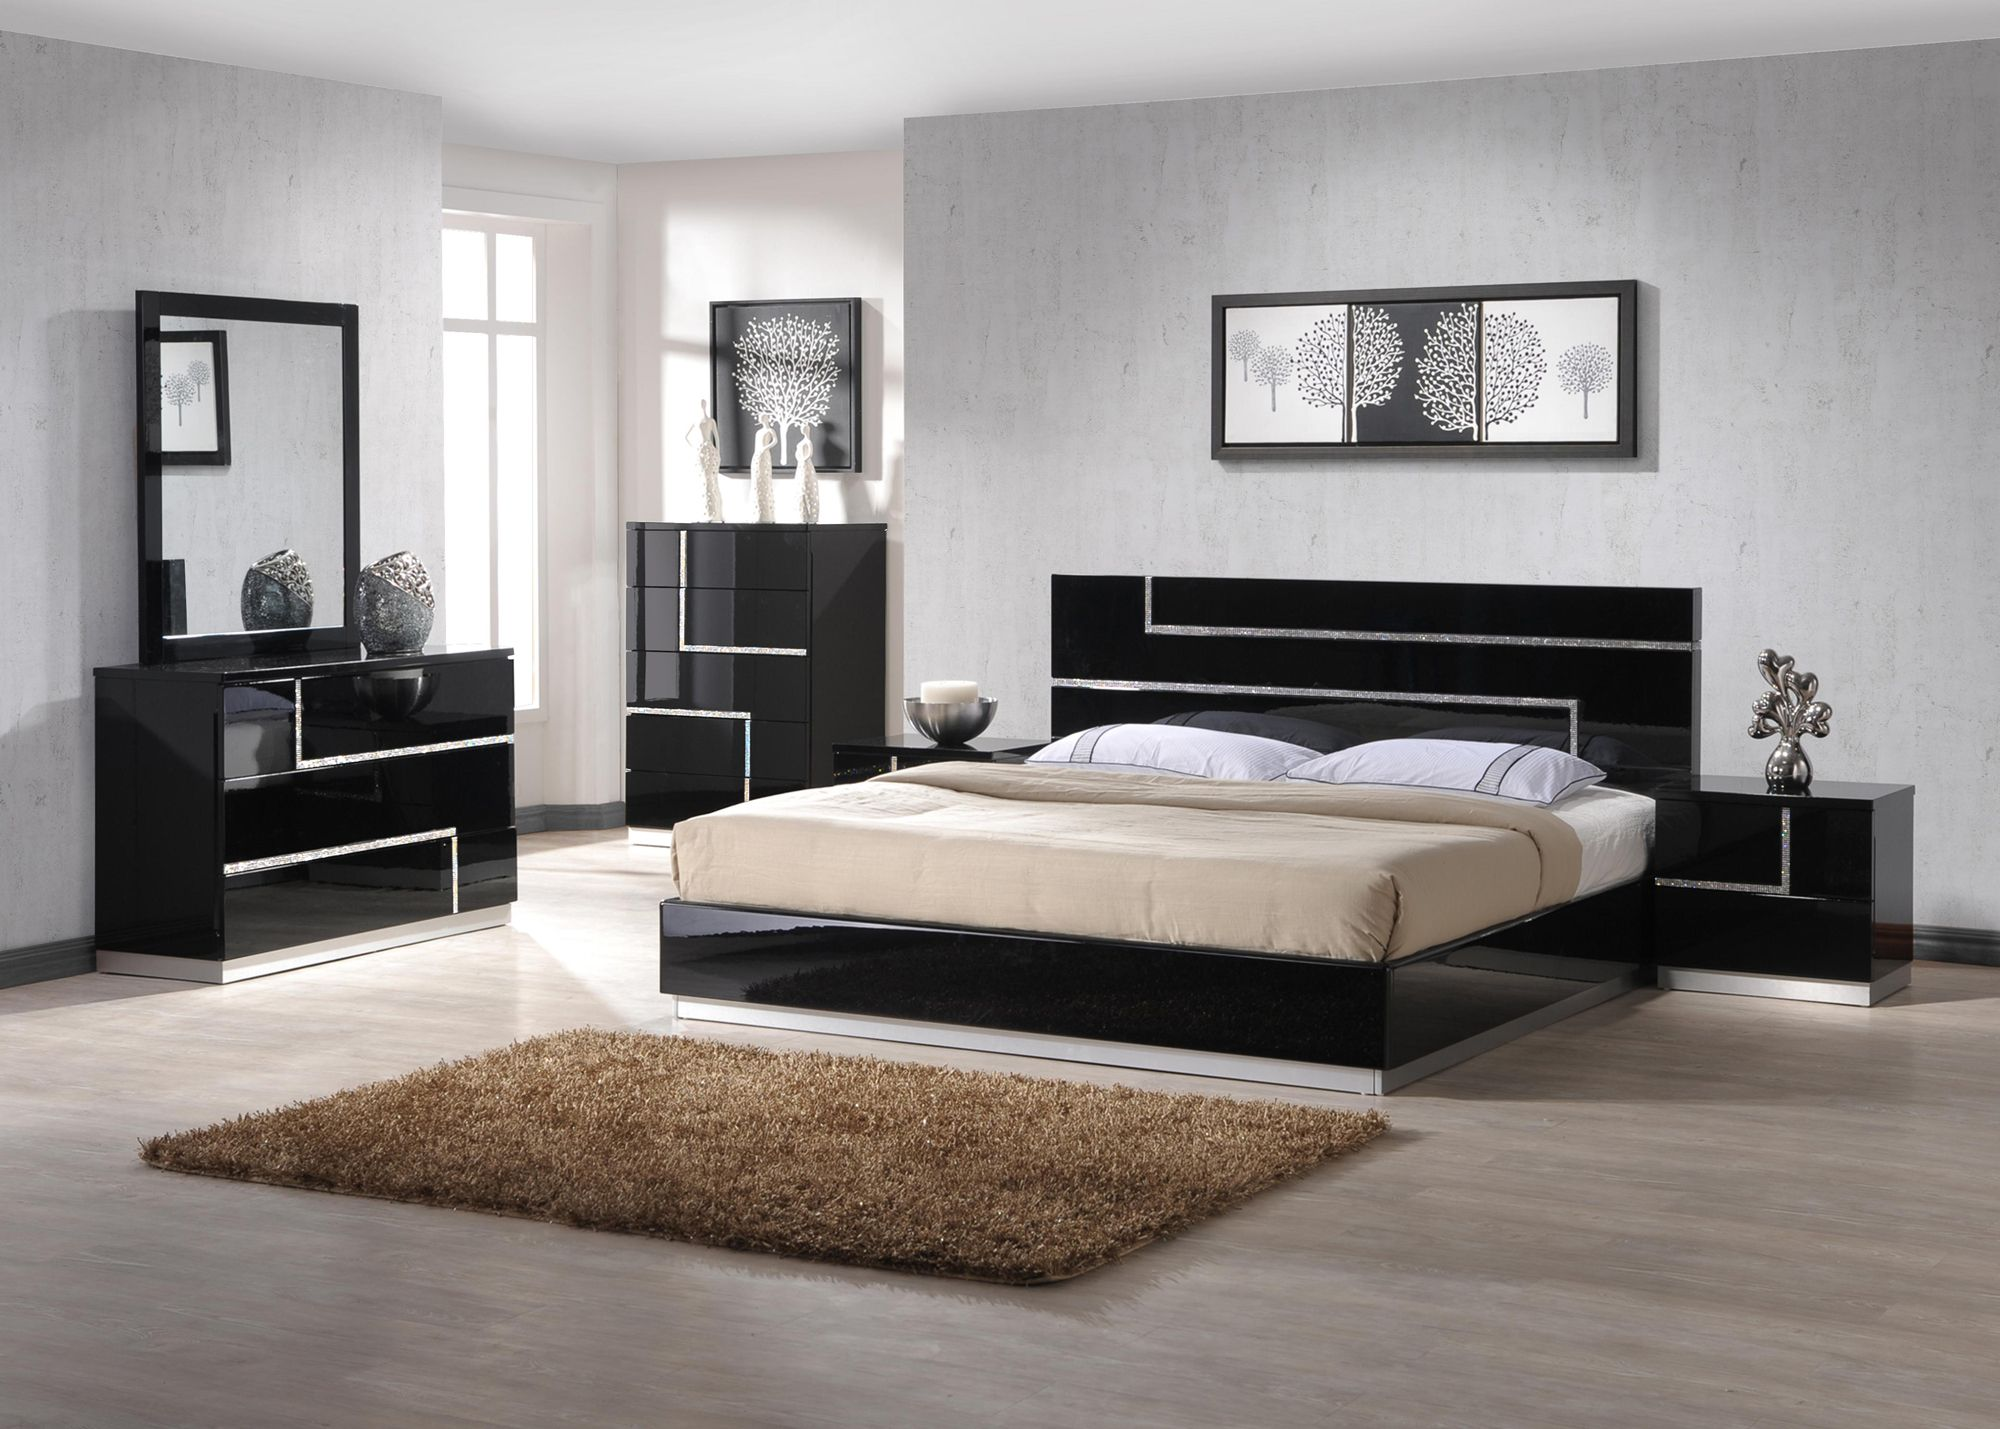 Bedroom Sets For Cheap New in House Designerraleigh kitchen